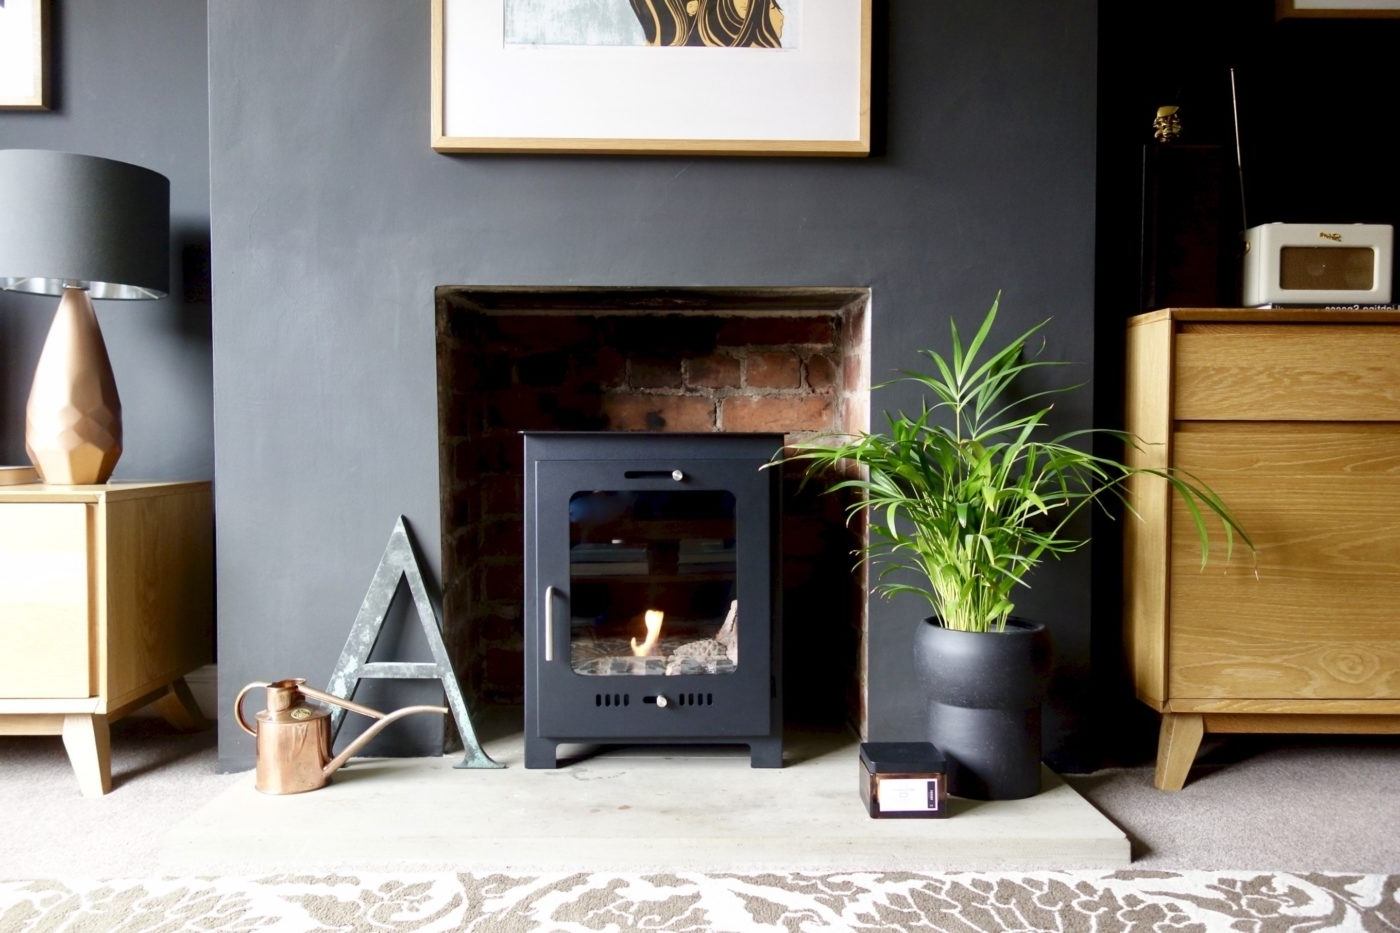 Chimney Breast Archives Making Spaces 30+ Living Room Chimney Breast Inspirations